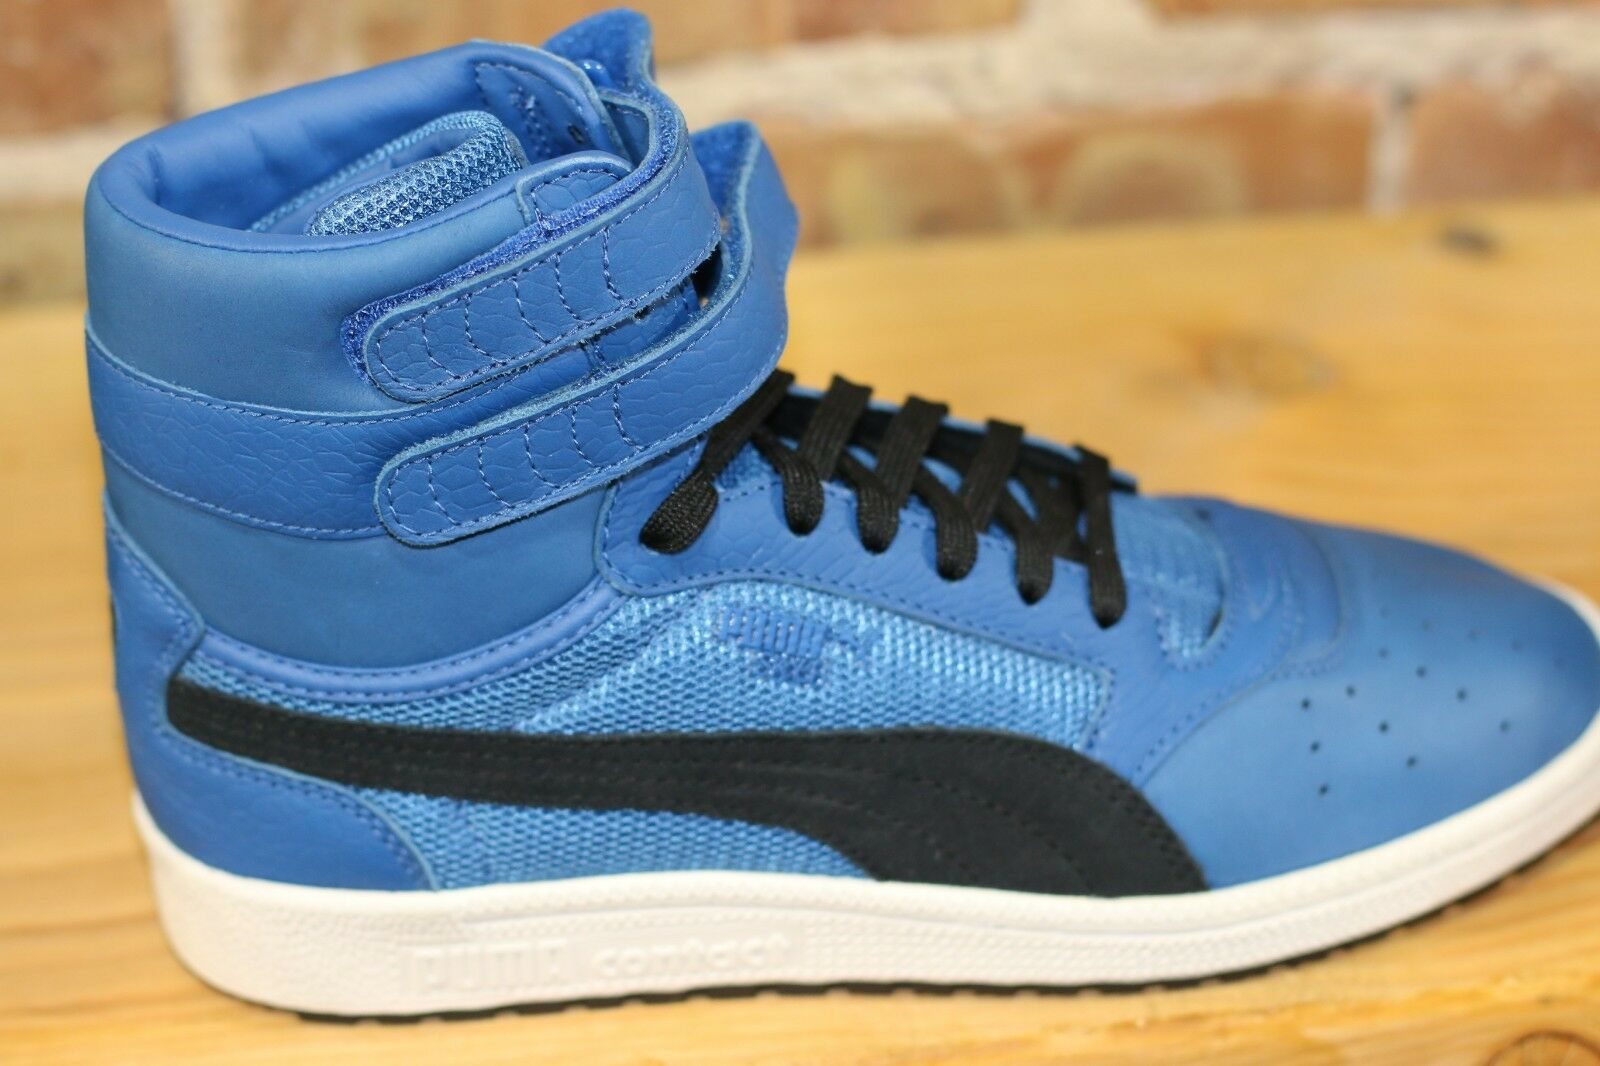 Puma Sky II HI color Blocked Leather - bluee - Mens